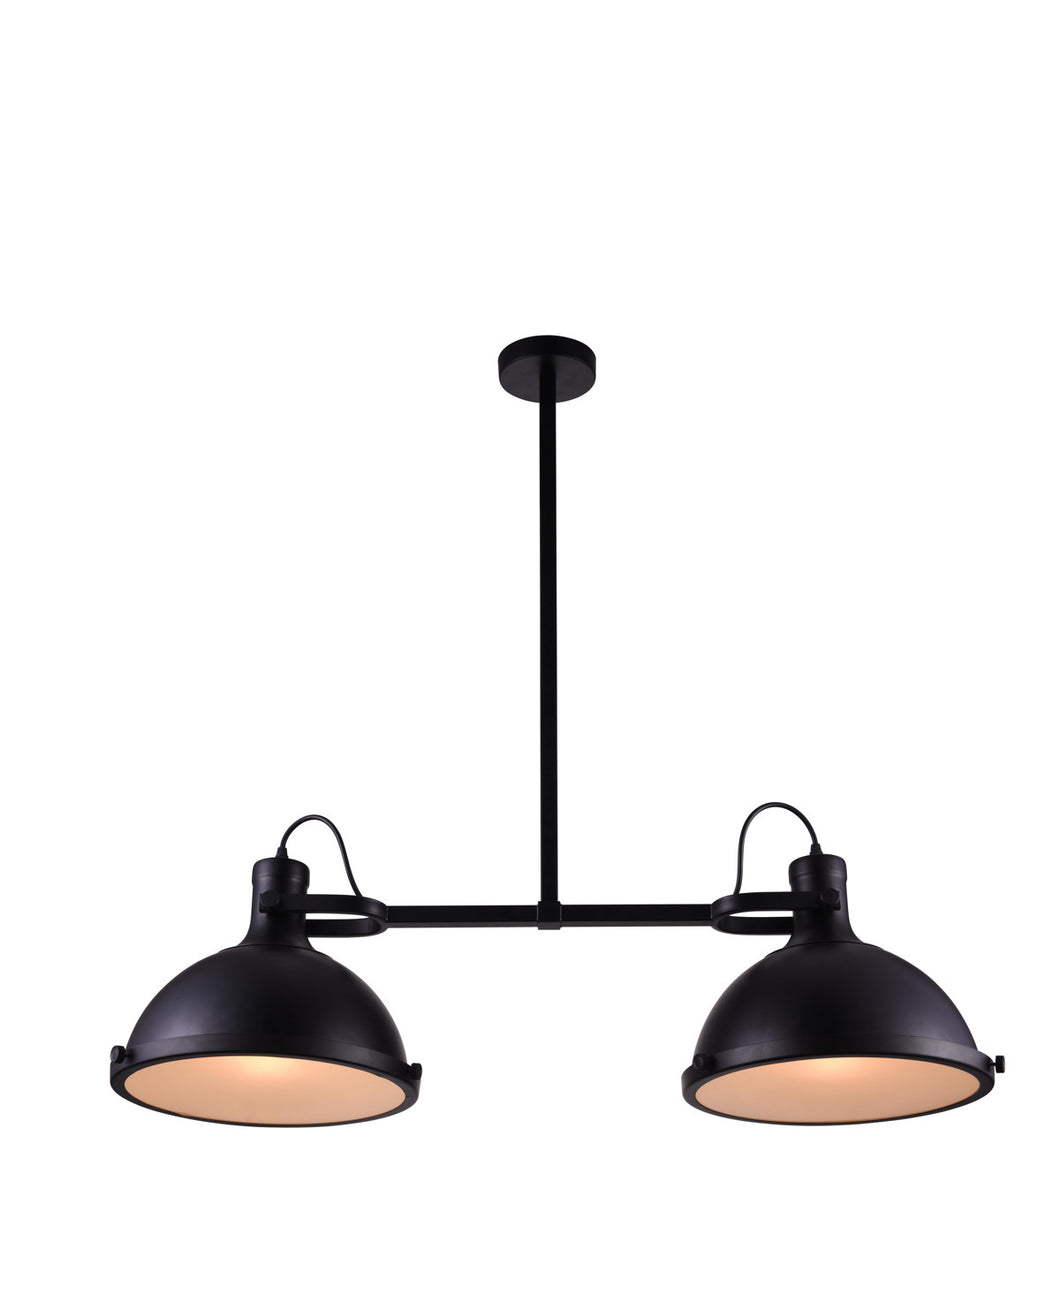 2 Light Island Chandelier with Black finish